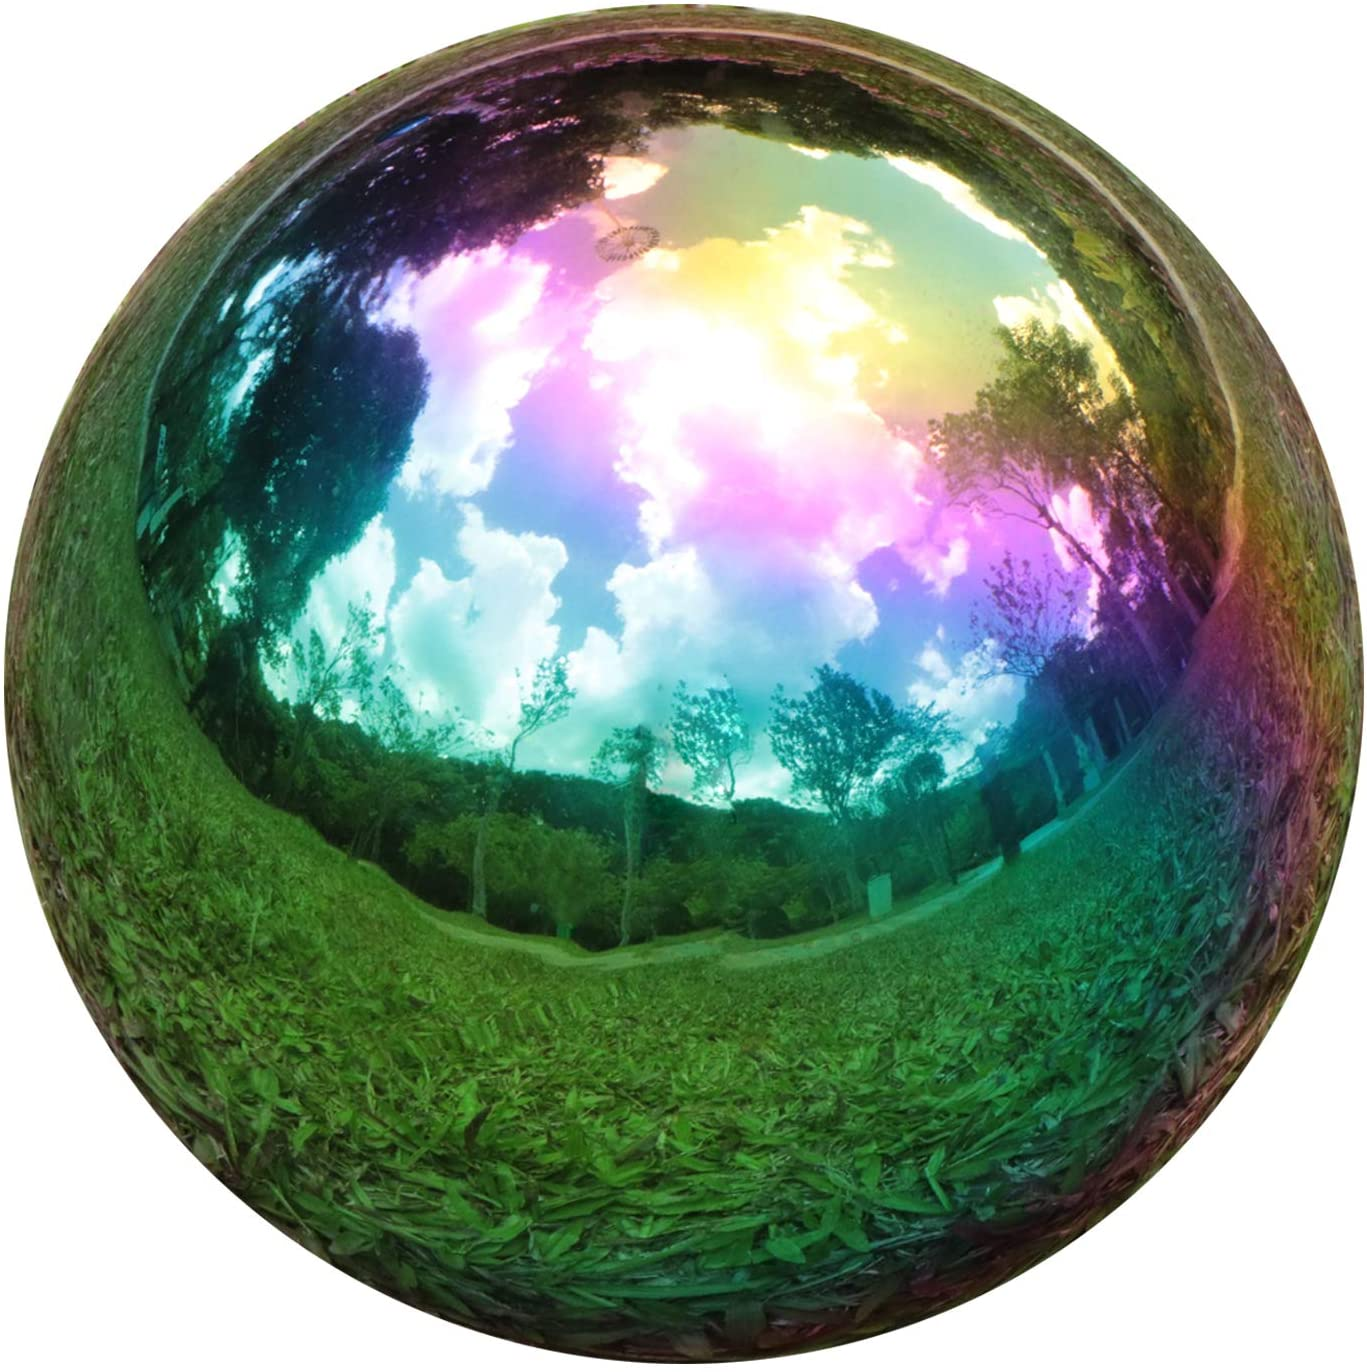 YeahaWo Rainbow Gazing Globe Mirror Balls for Garden Home Stainless Steel Shiny Hollow Sphere Sparkling Outdoor Ornament (3 Inch)